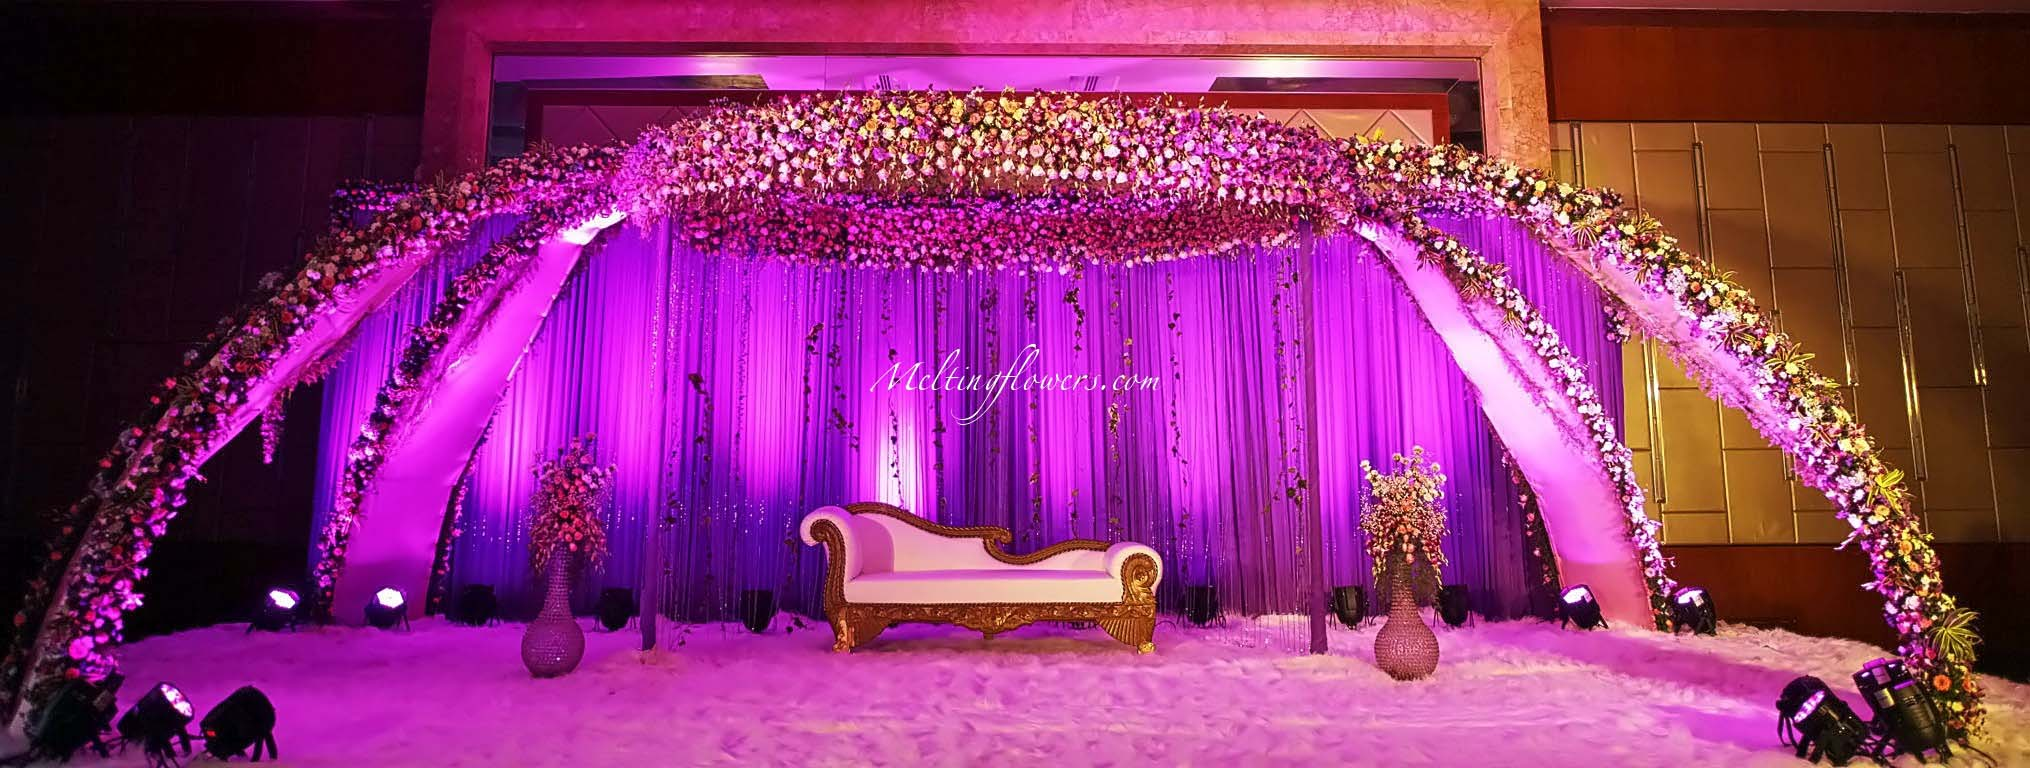 Wedding backdrops backdrop decorations melting flowers for Backdrops wedding decoration